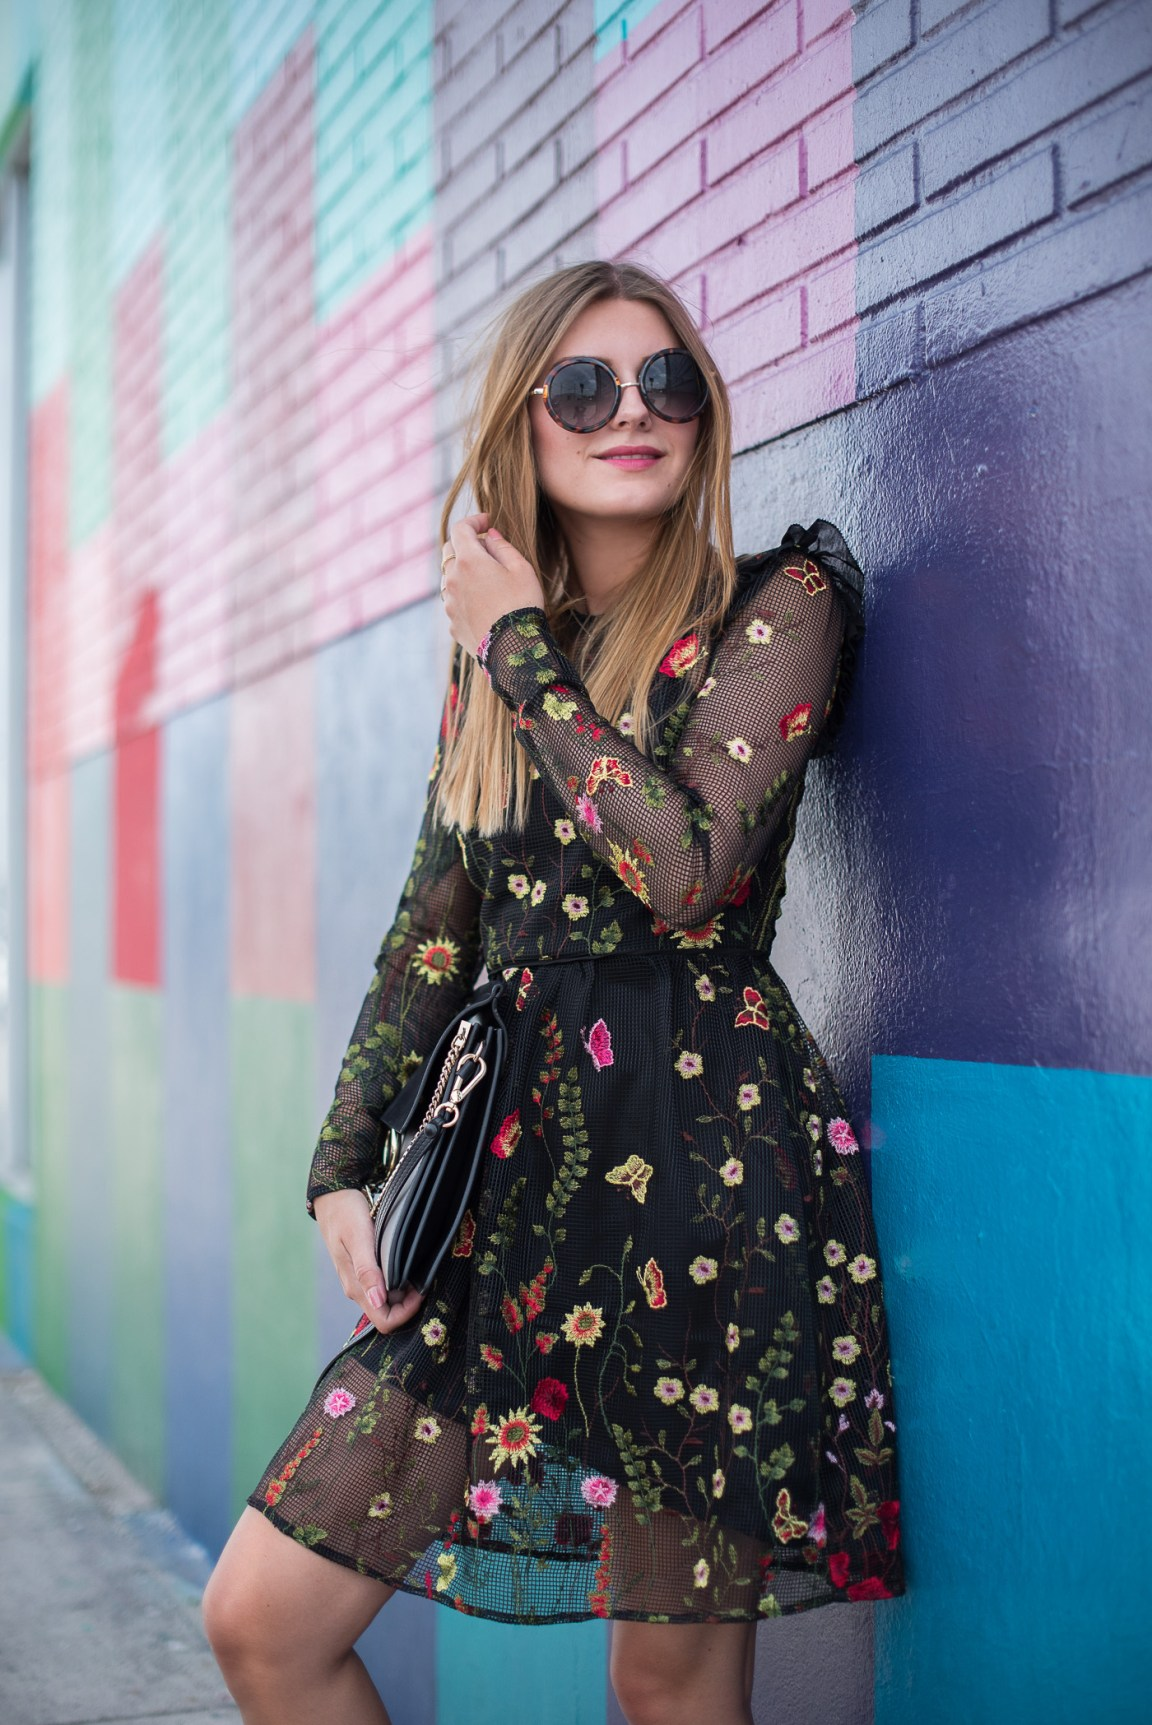 miami_wynwood_walls_flower_print_dress_5